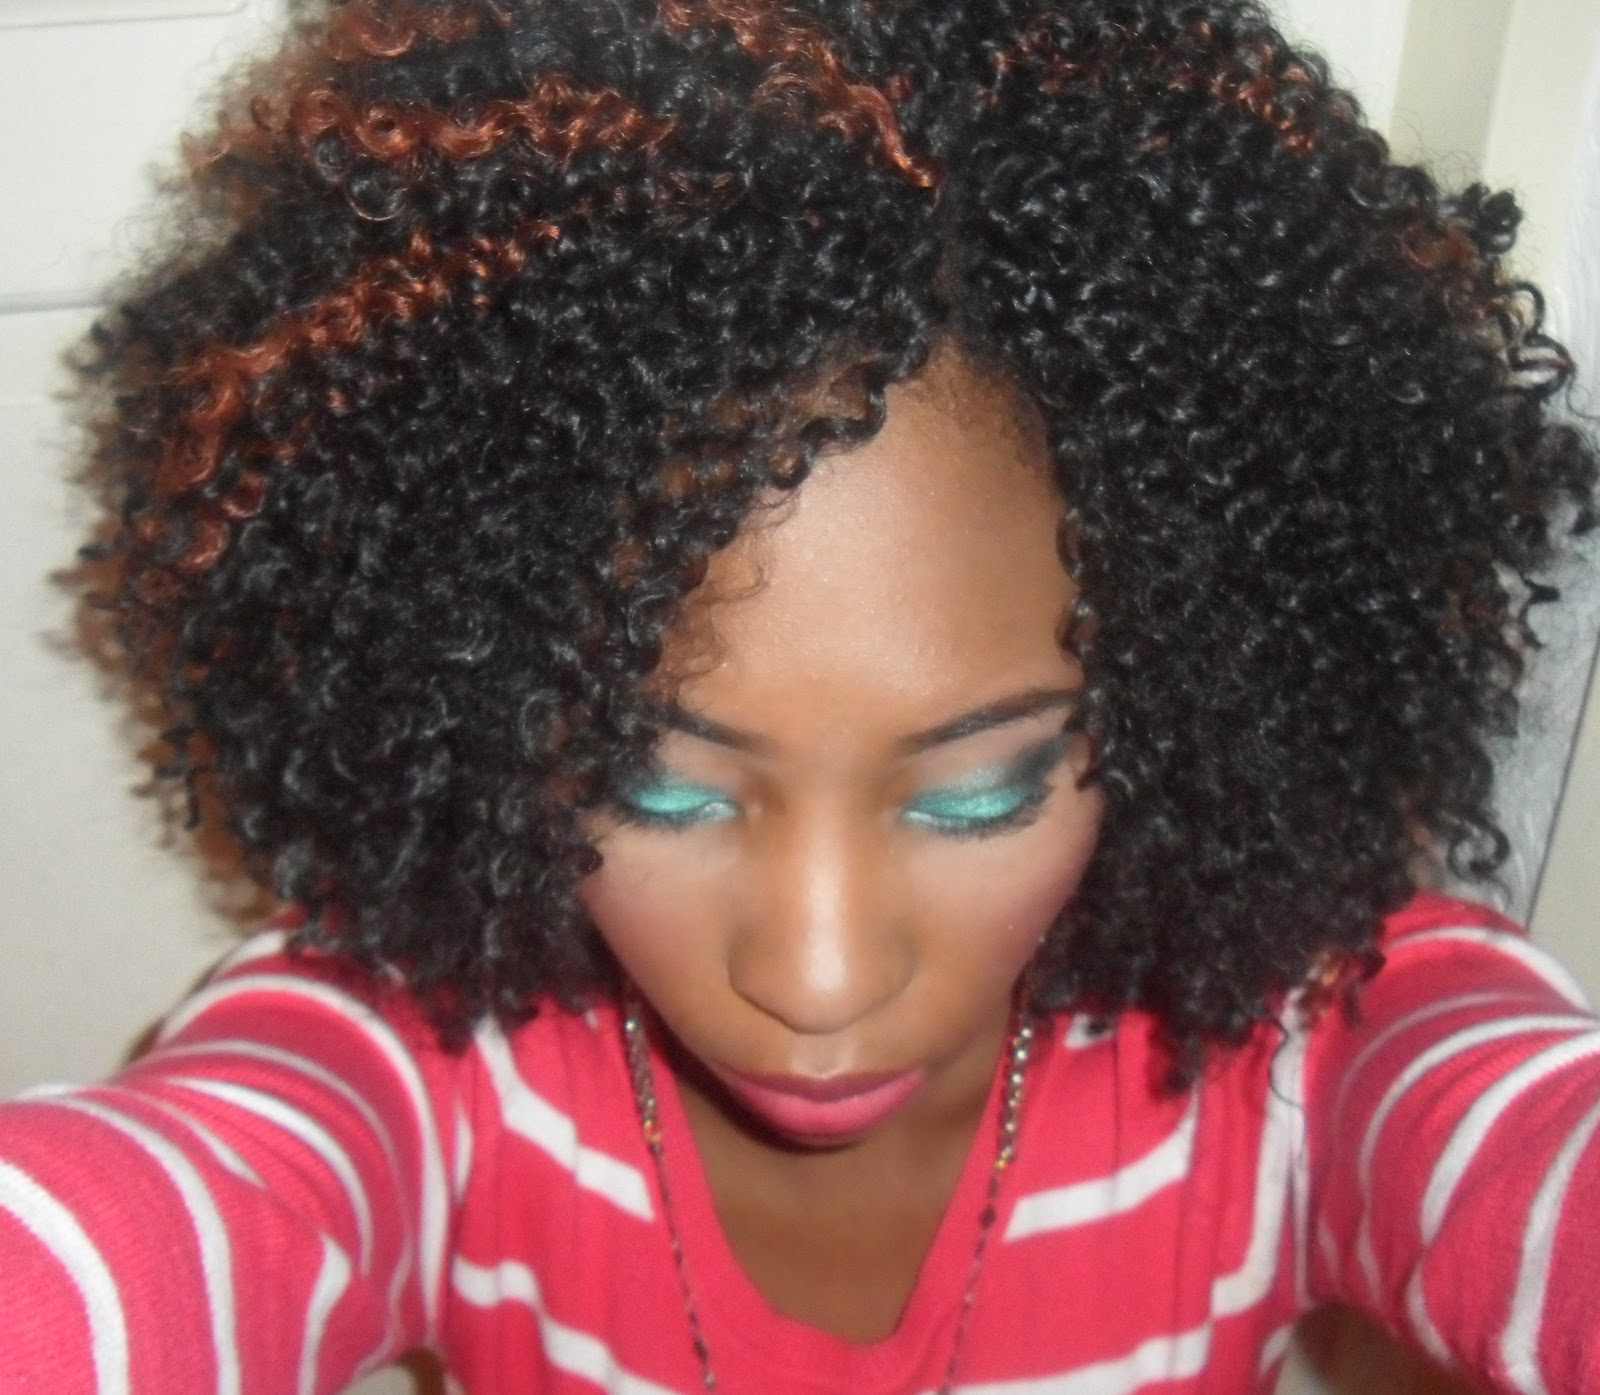 Crochet Hair Uk : ... questions, e-mail me at nubianpride@live.co.uk / tweet me @Ray_Ray49